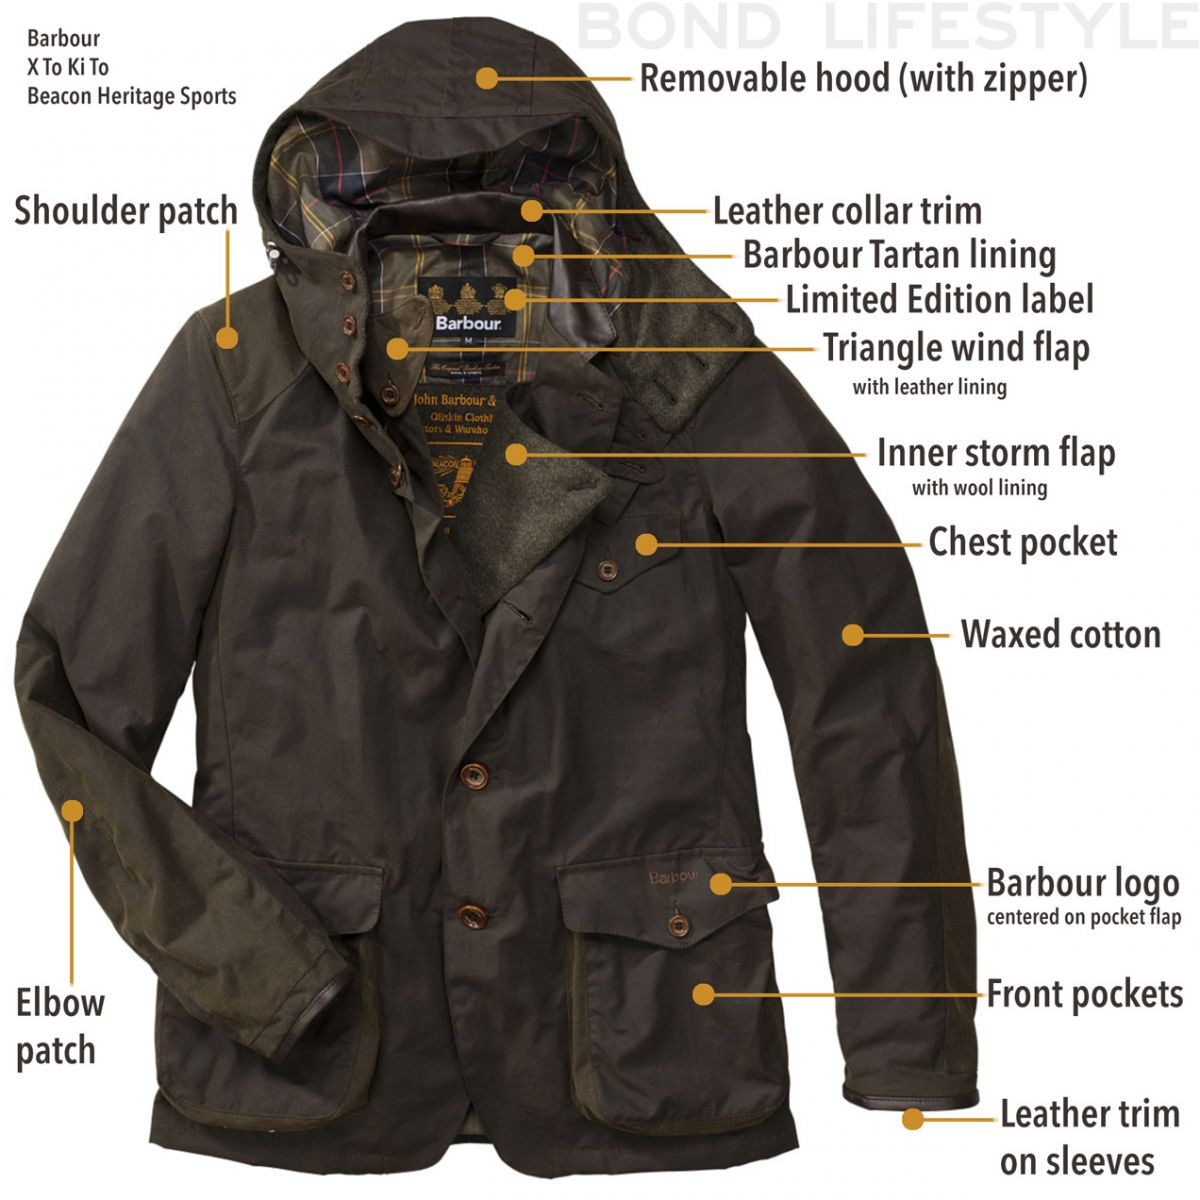 Barbour X To Ki To Beacon Heritage Sports jacket features details